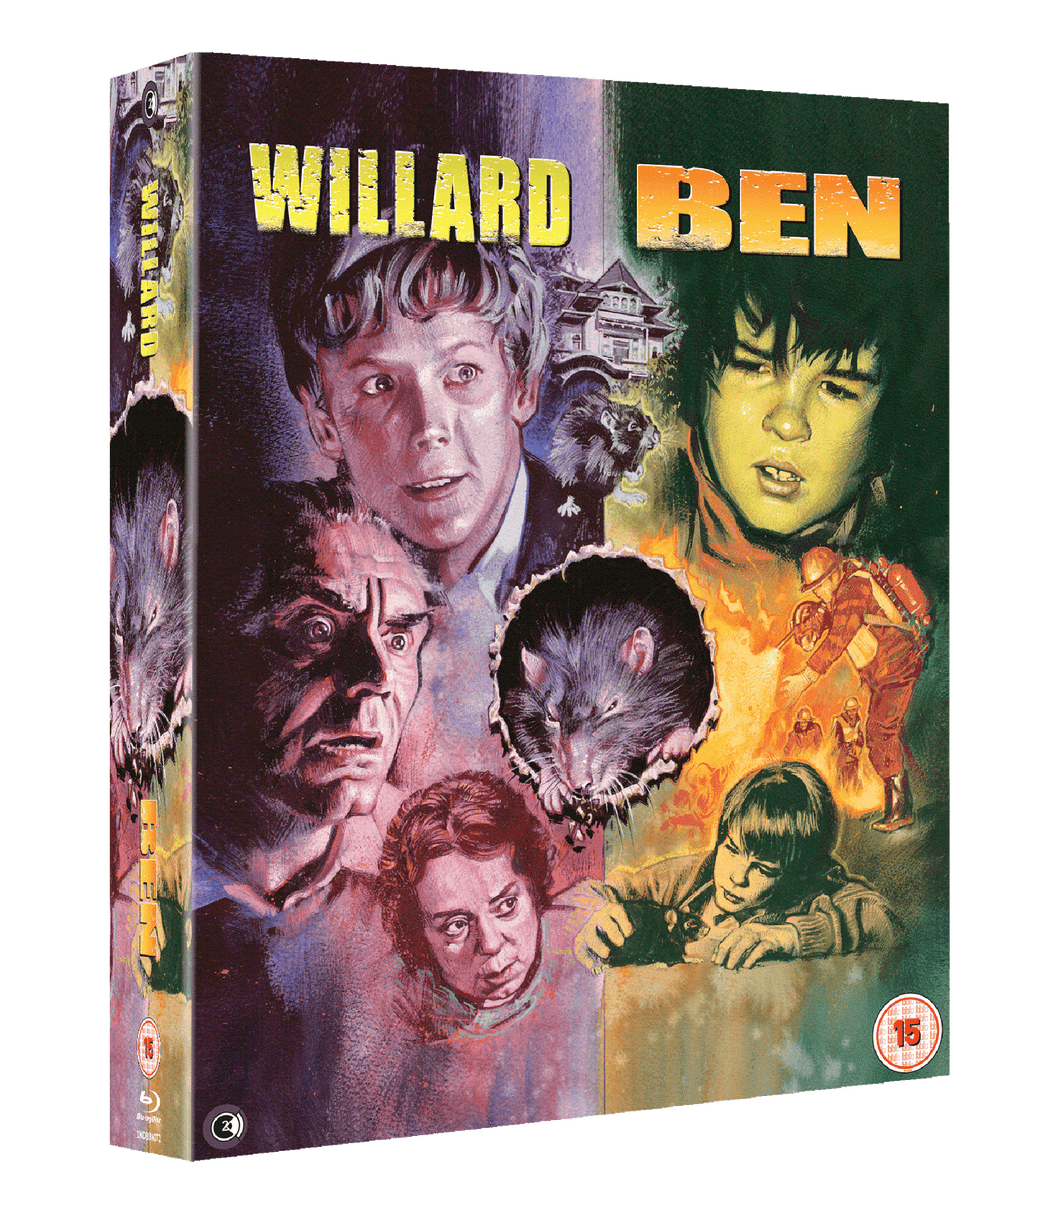 Willard / Ben Limited Edition Box Set